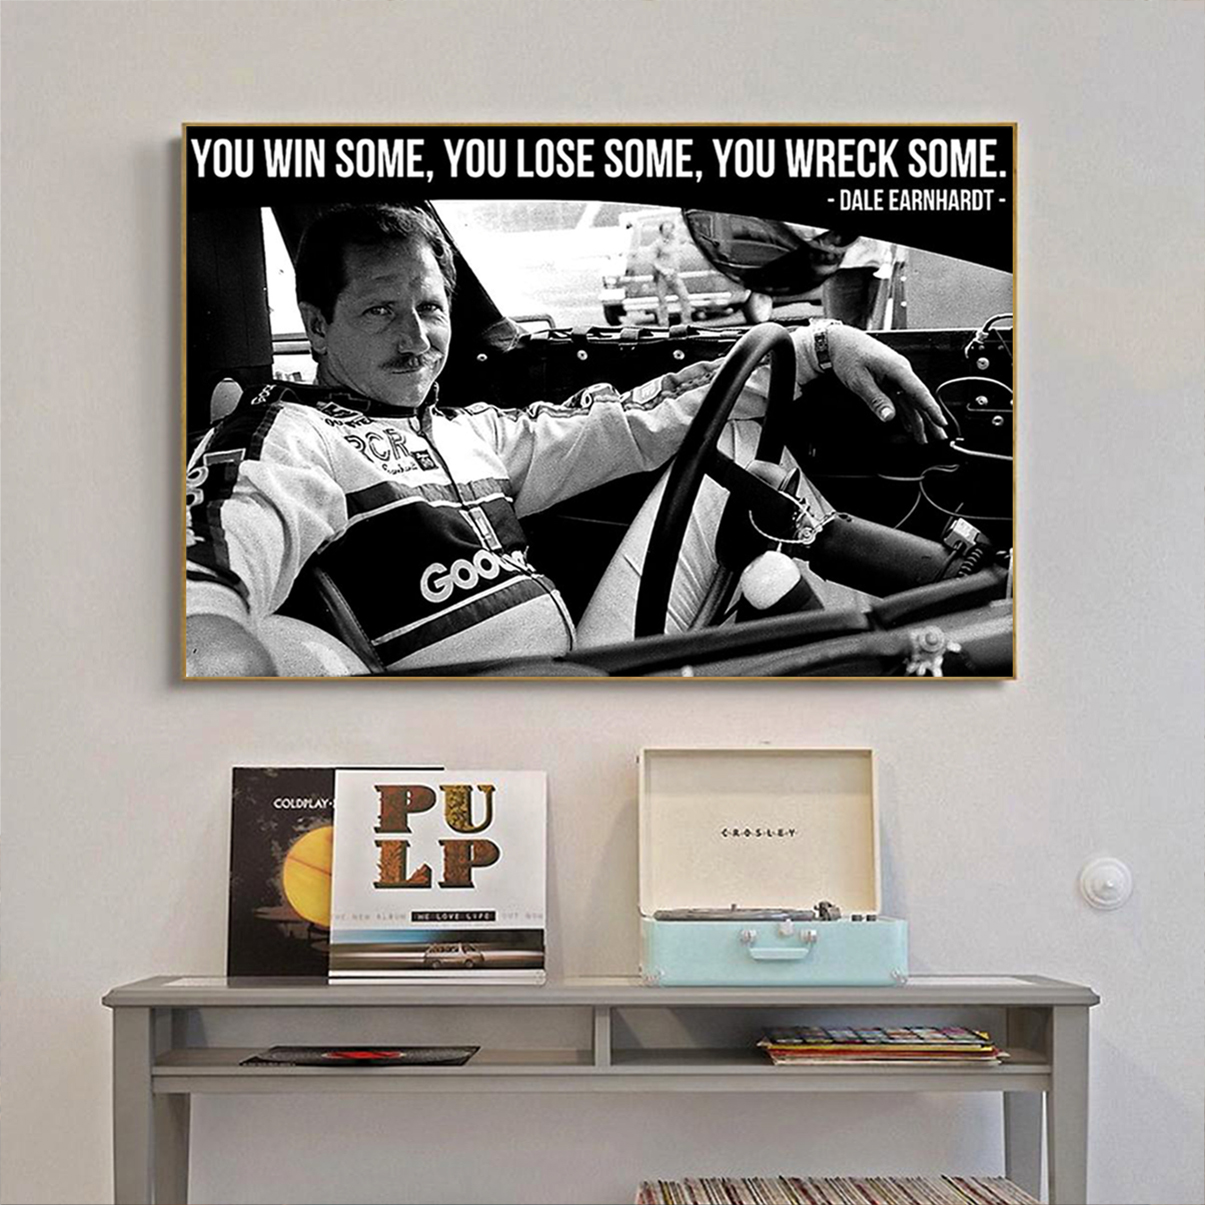 Dale earnhardt you win some you lose some you wreck some poster A1